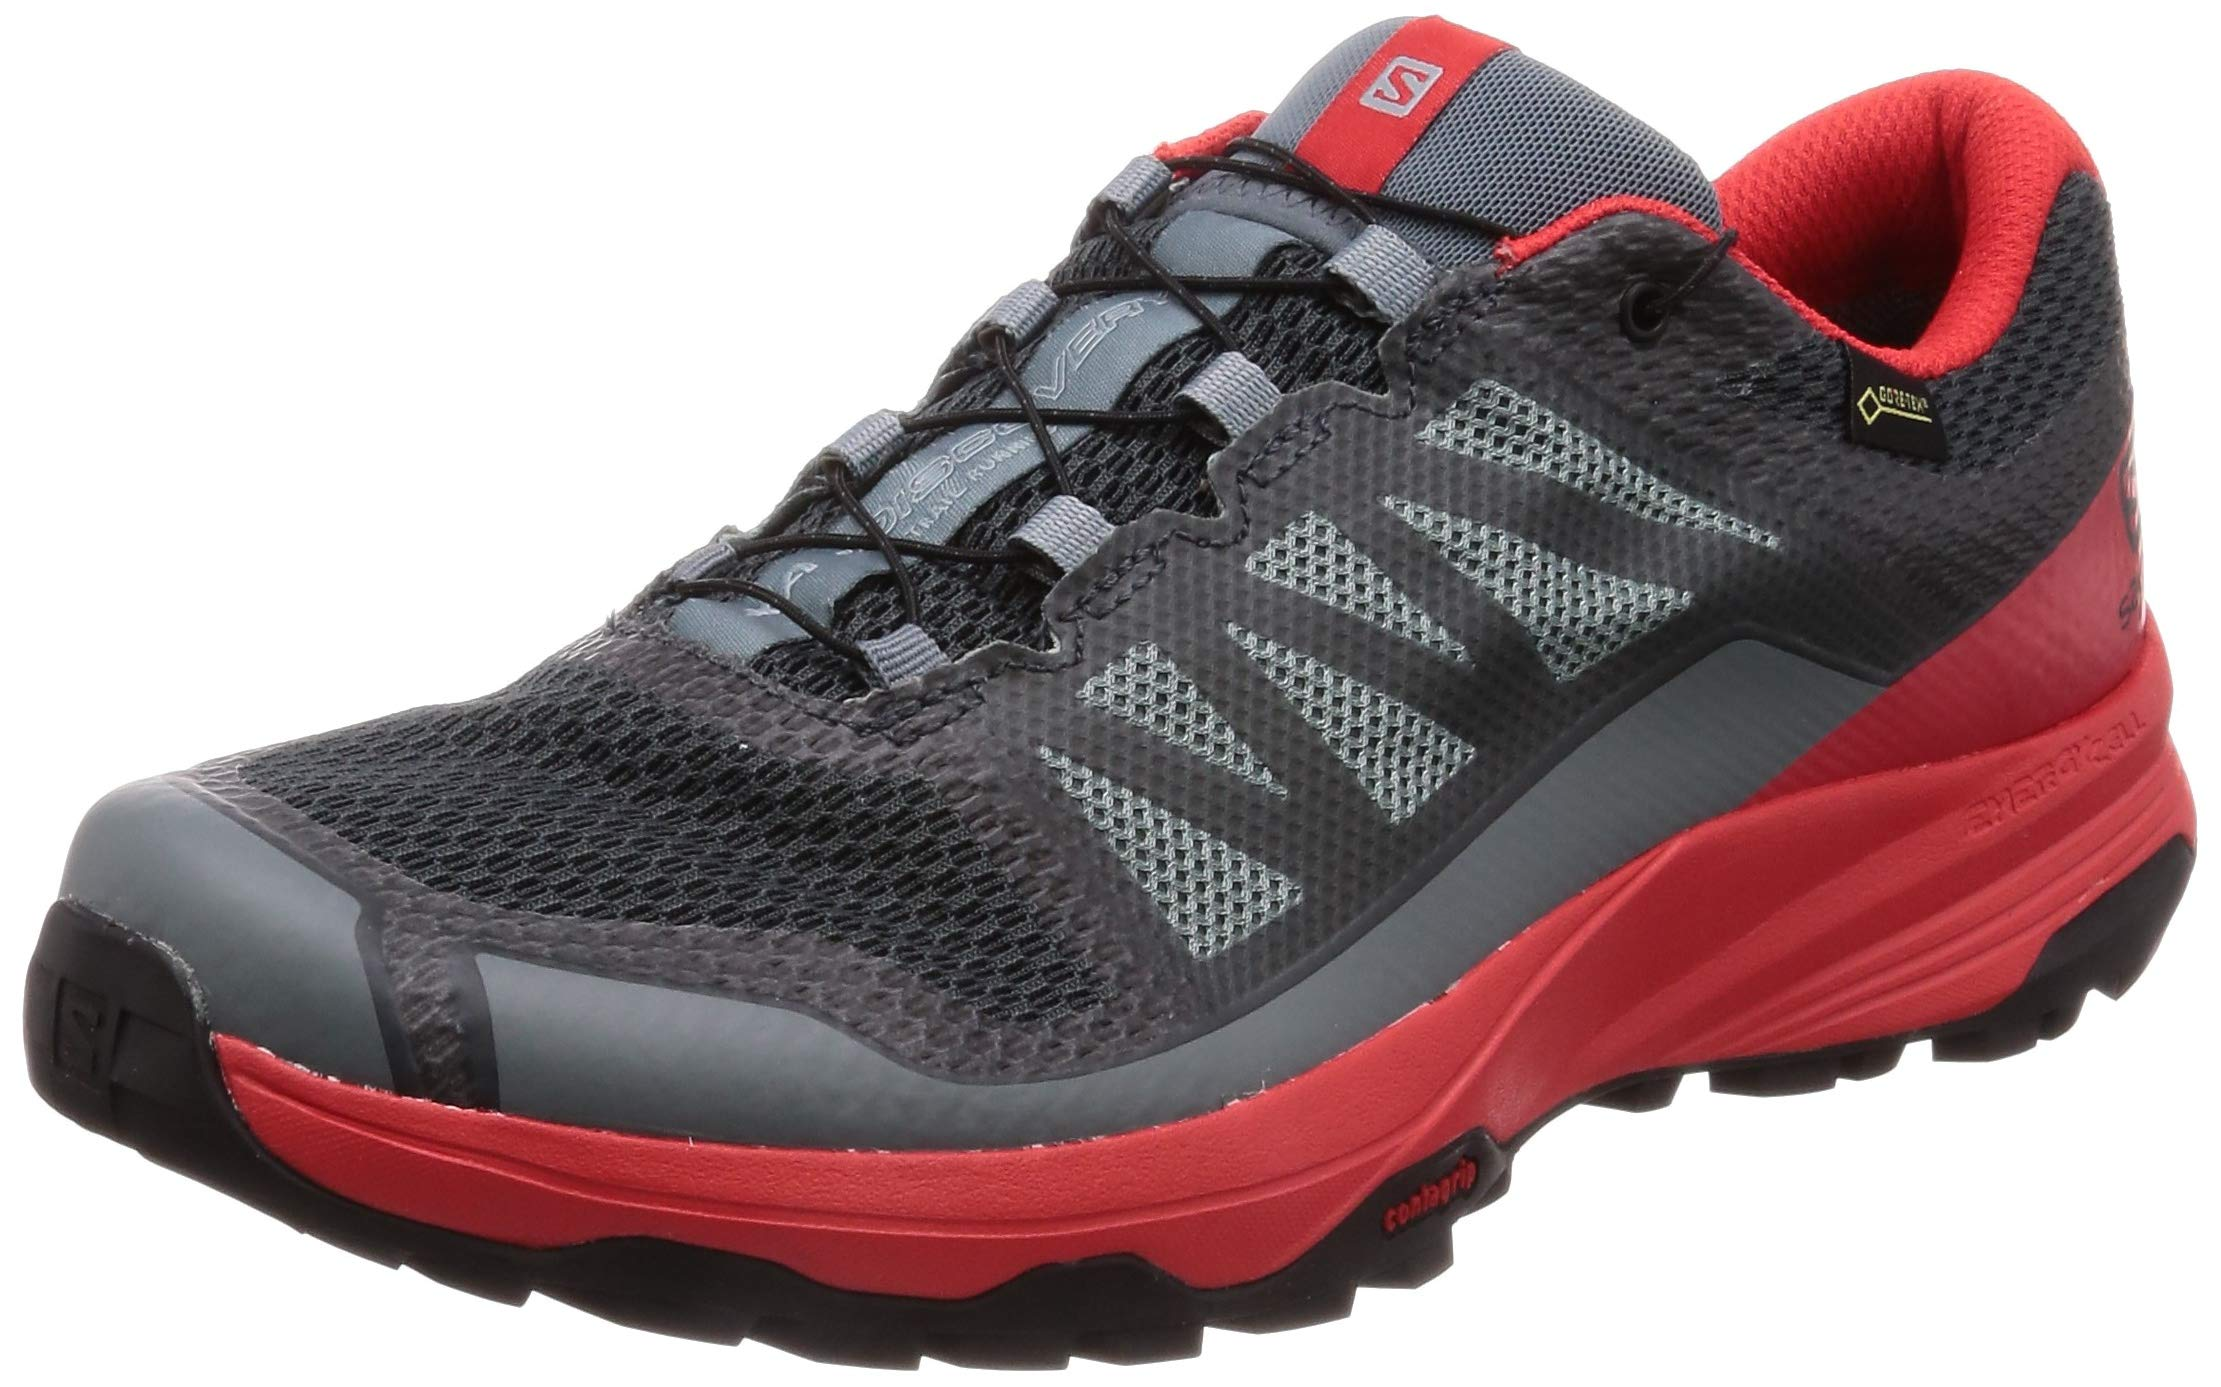 blackTaille De Trail GtxChaussures Xa 2 Salomon 3 Homme Risk Red RunningGrisstormy 40 Discovery Weather high tCxsQhrBd